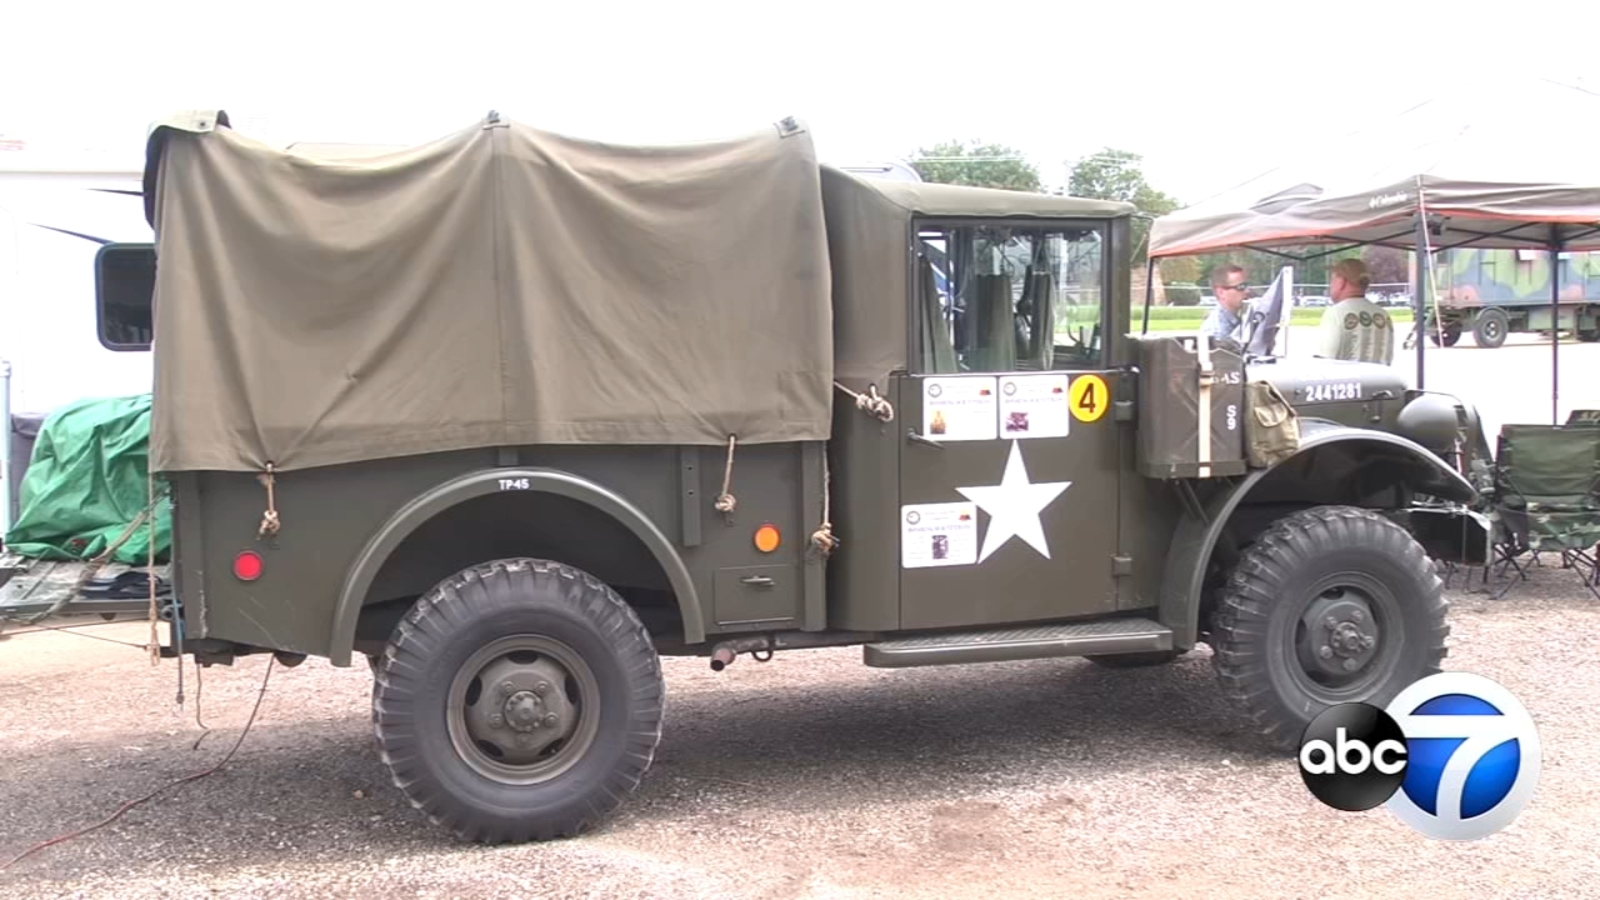 Dozens of vintage military vehicles traveling cross-country